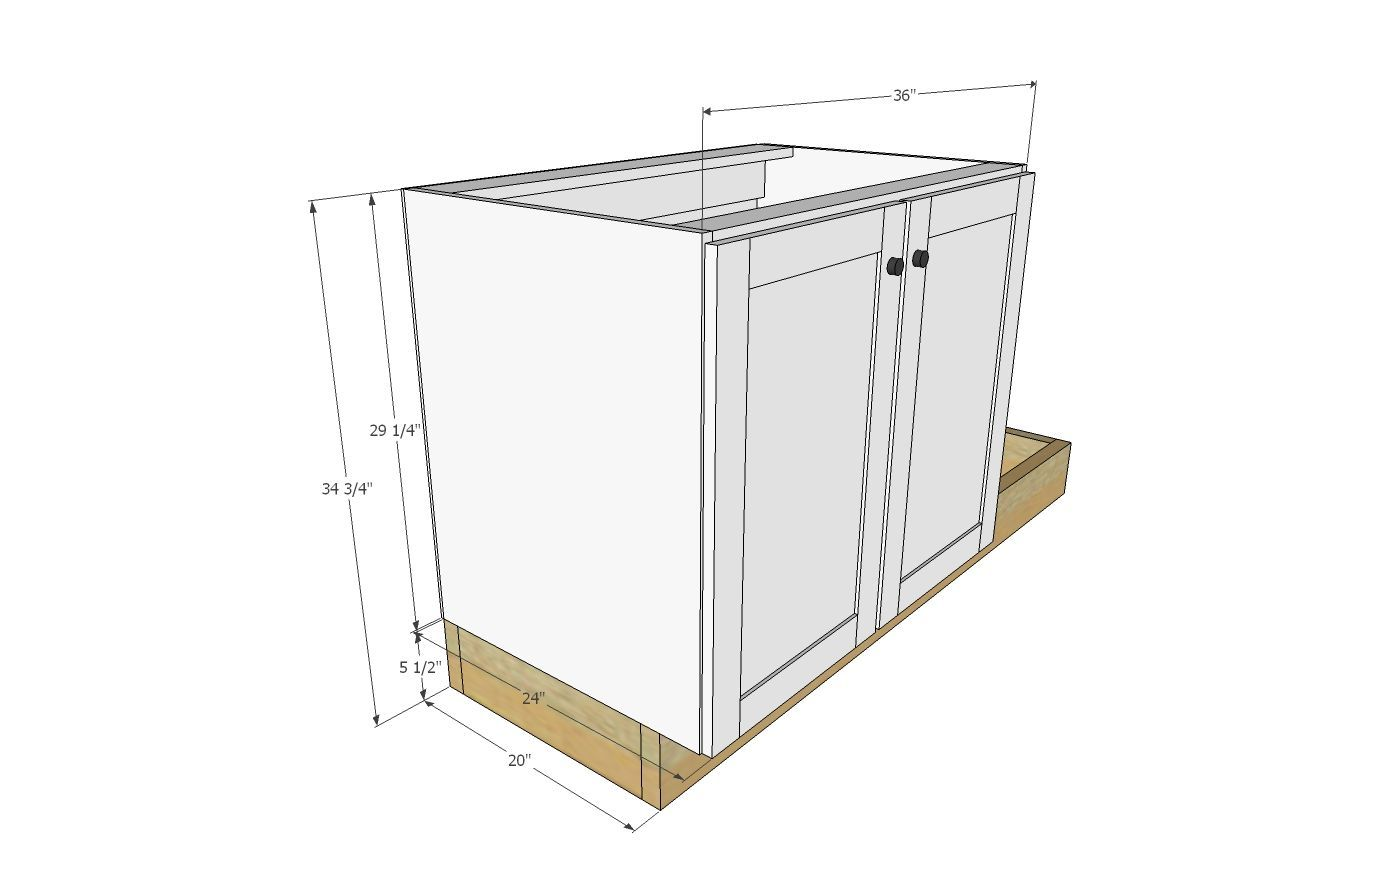 Ana White Build A Euro Style Kitchen Sink Base Cabinet For Our